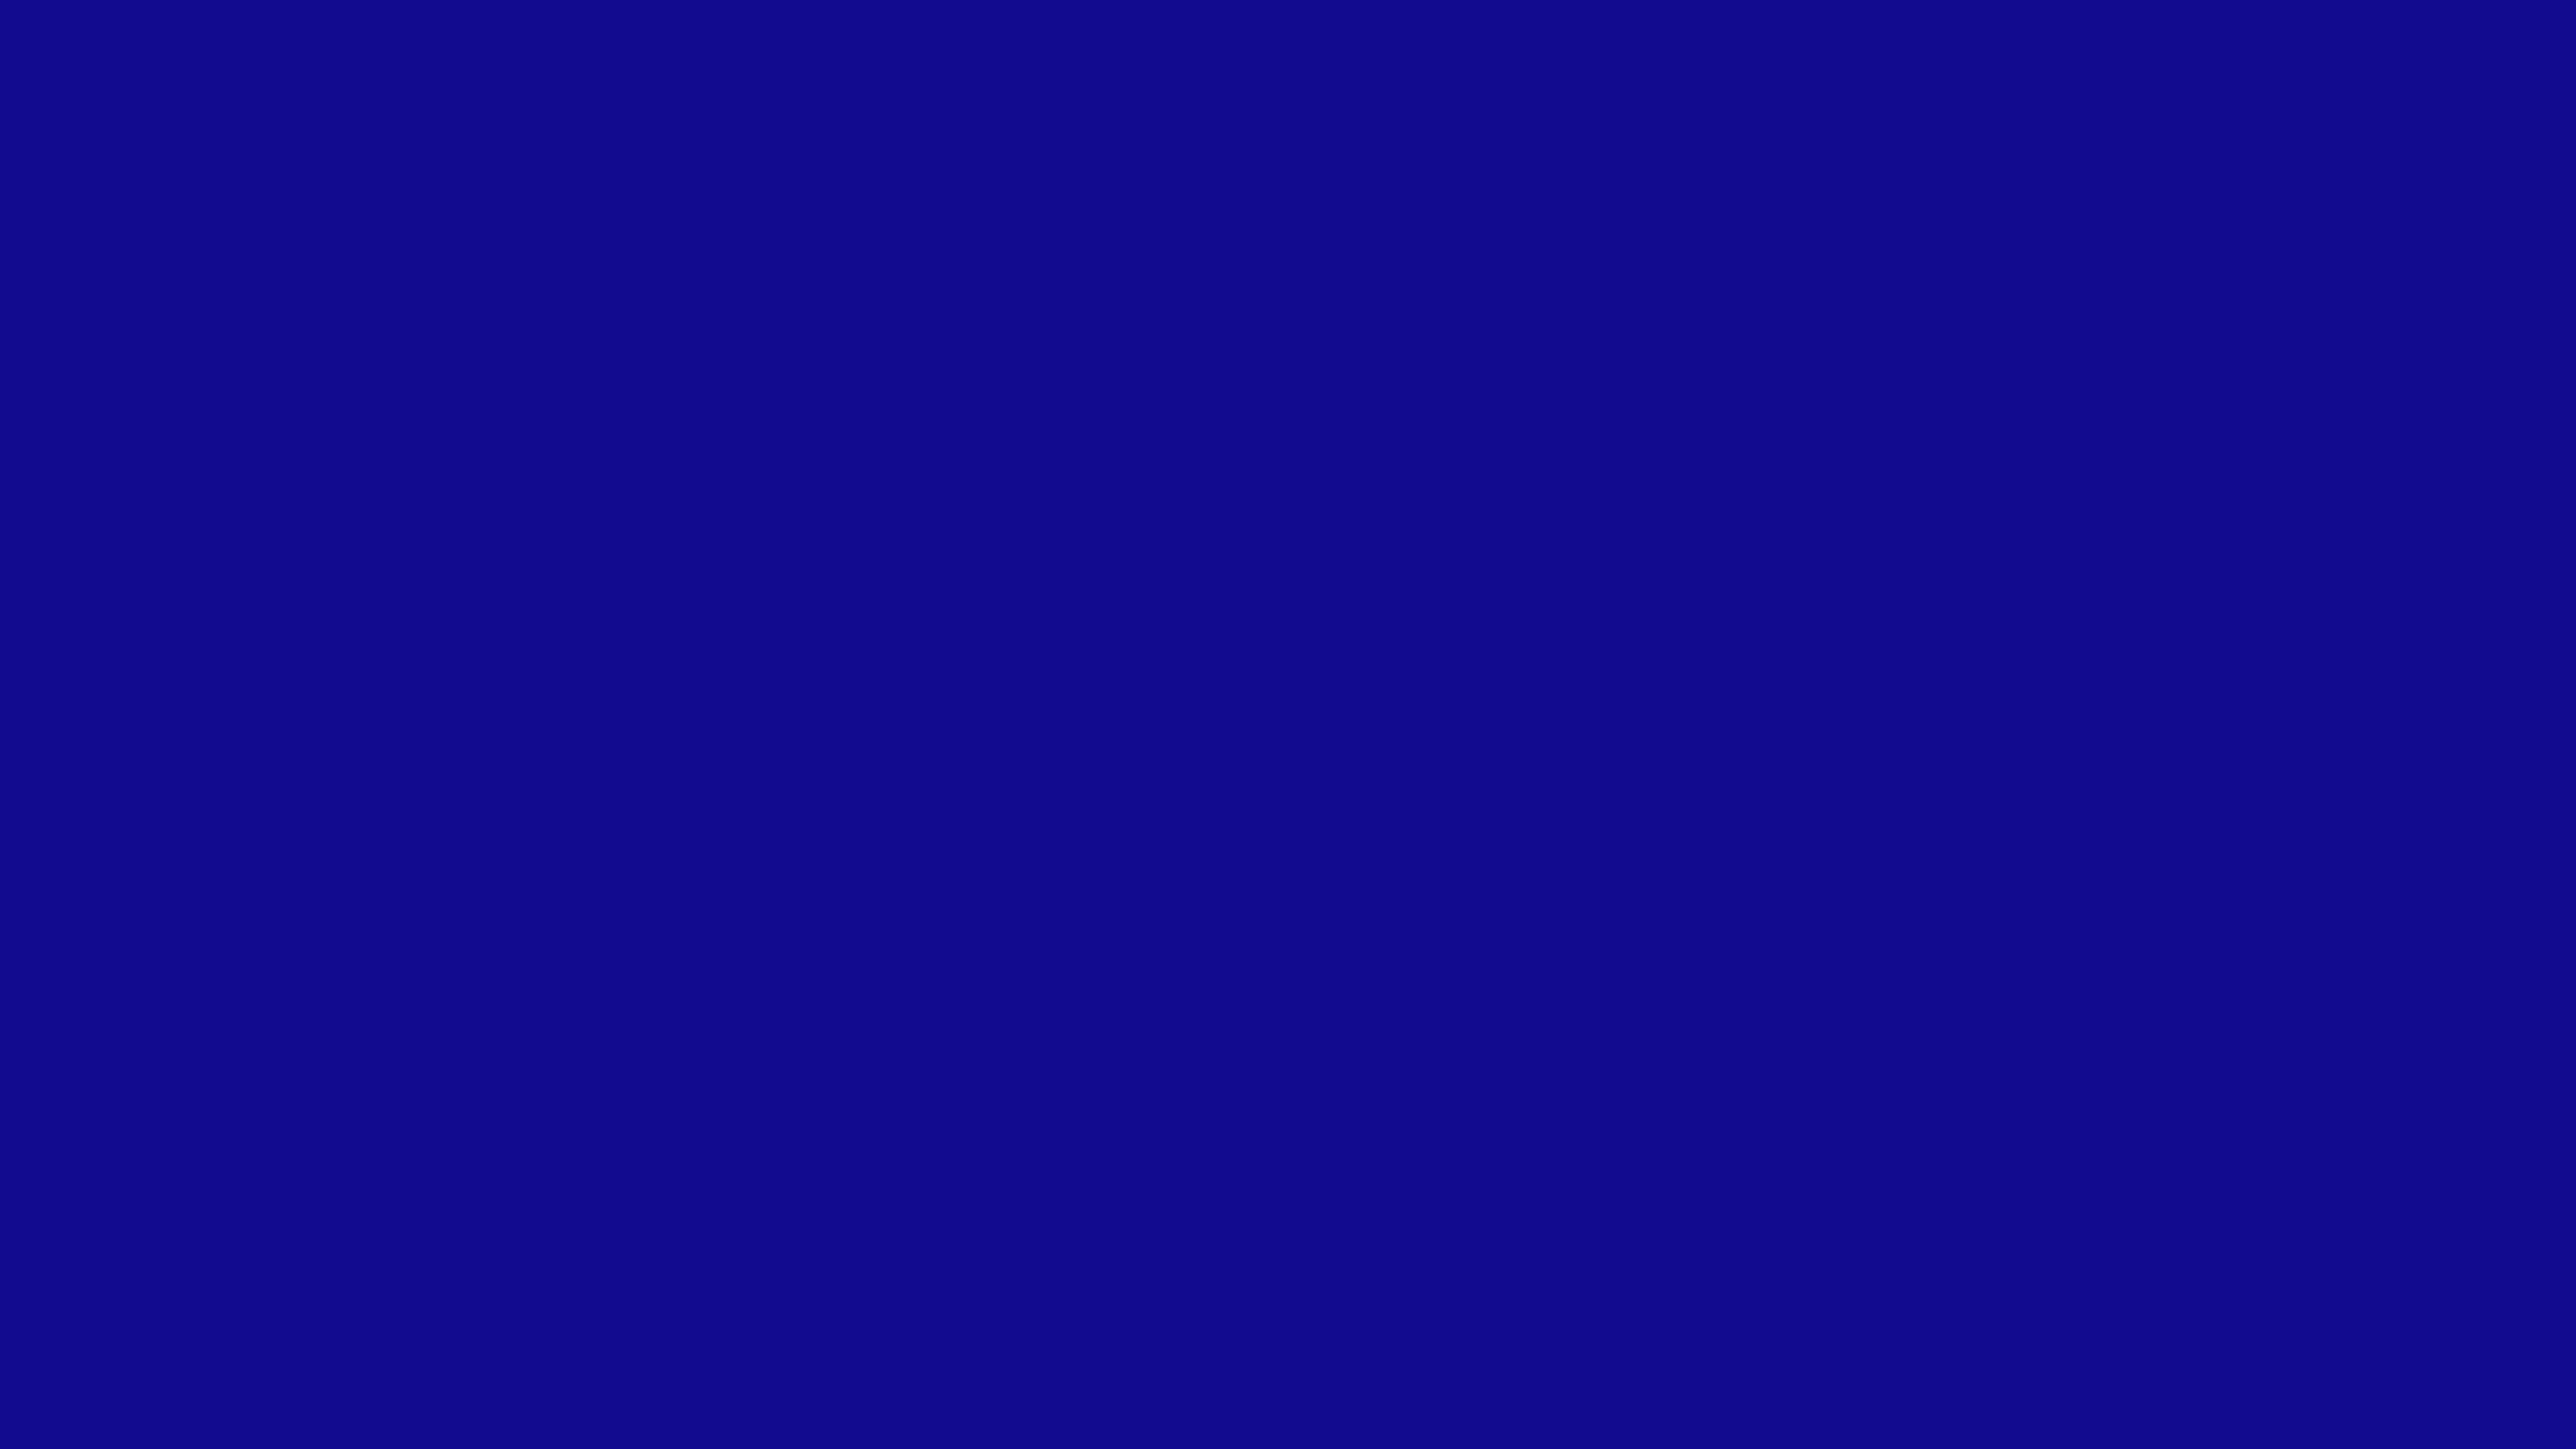 3840x2160 Ultramarine Solid Color Background